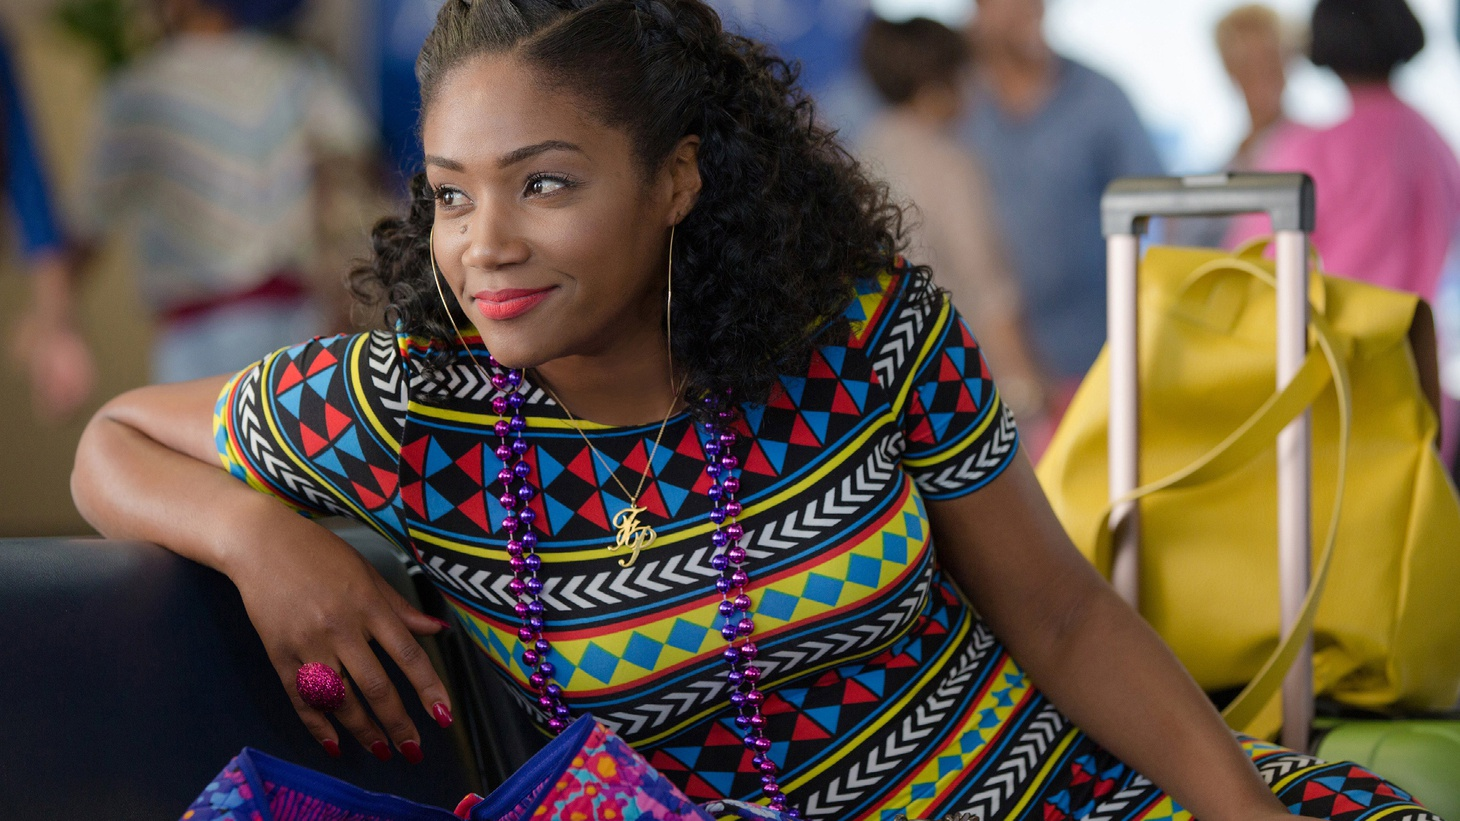 We revisit our conversation with actress and comedian Tiffany Haddish, who had a star-is-born moment earlier this summer with the raunchy comedy Girls Trip.